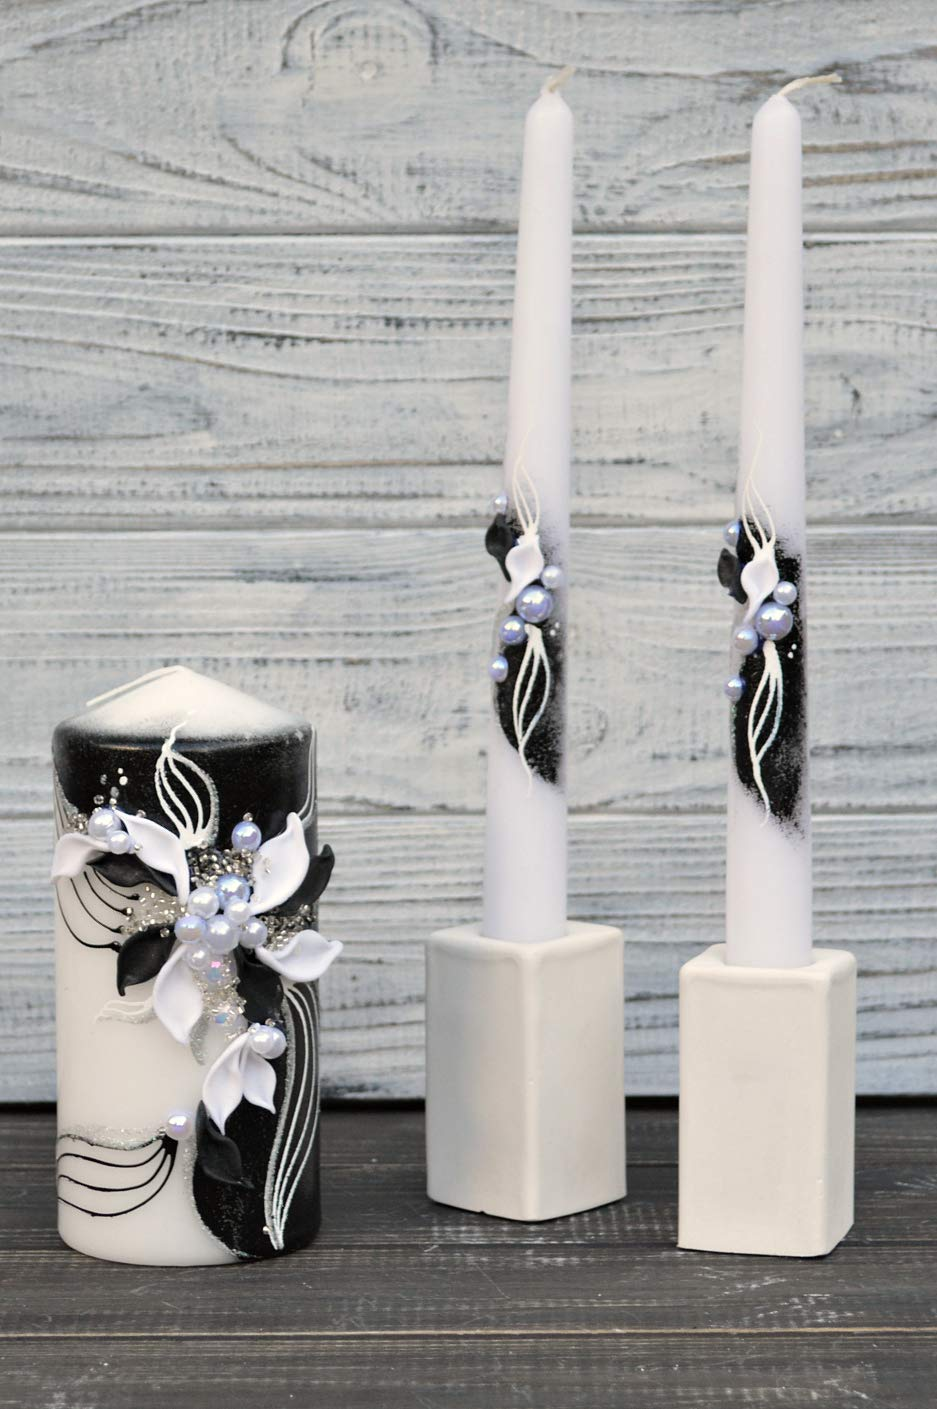 Magik Life Unity Candle Set for Wedding - Wedding décor & Wedding Accessories - Candle Sets - 6 Inch Pillar and 2 10 Inch Tapers - Best Unity Candle- Black by Magik Life